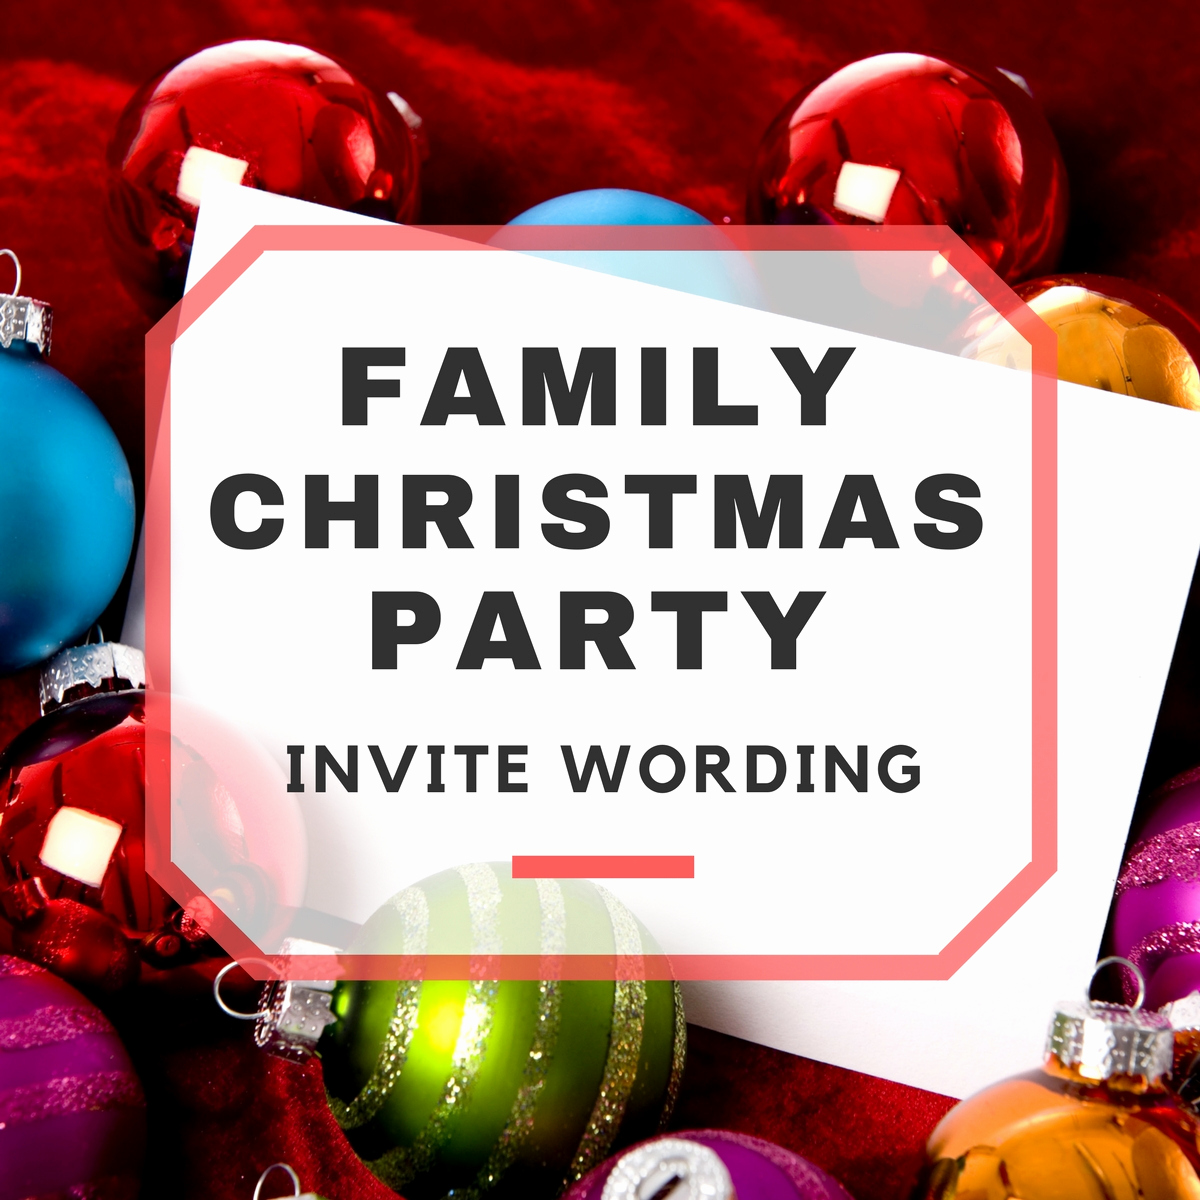 Christmas Party Invitation Wording Inspirational Family Christmas Party Invitation Wording